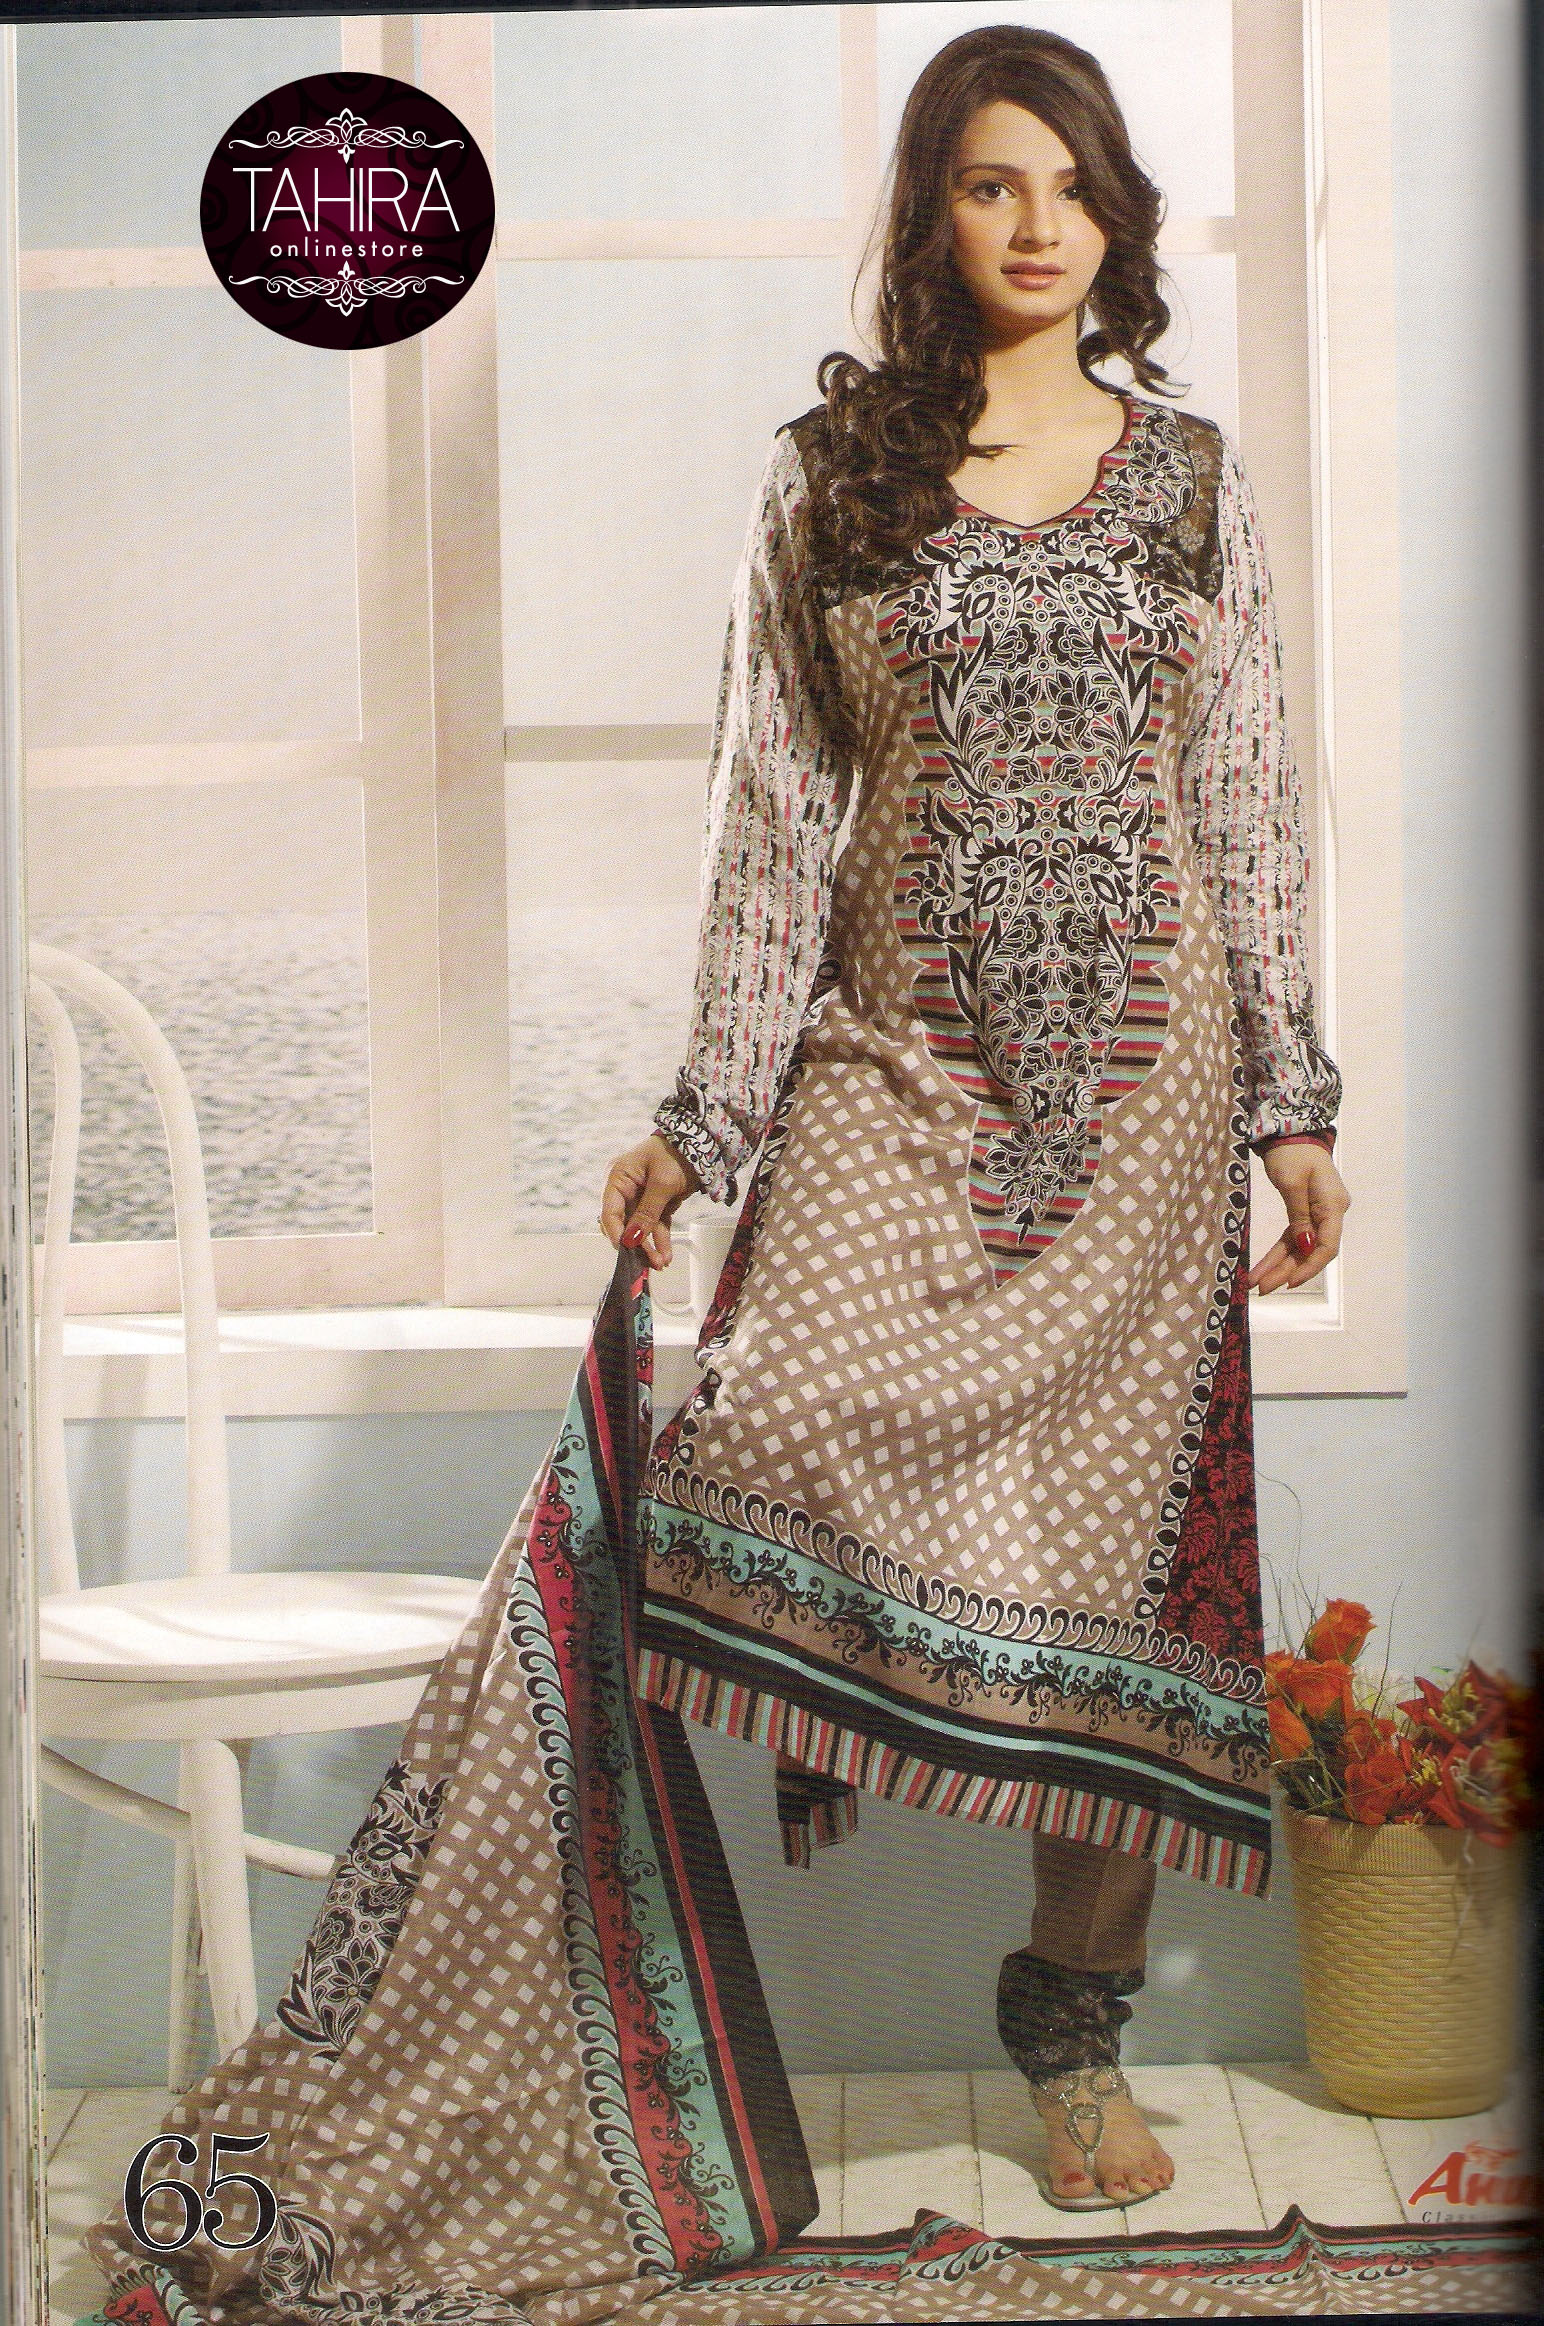 buy shalwar kameez pakistani shalwar kameez usa uk online. Black Bedroom Furniture Sets. Home Design Ideas